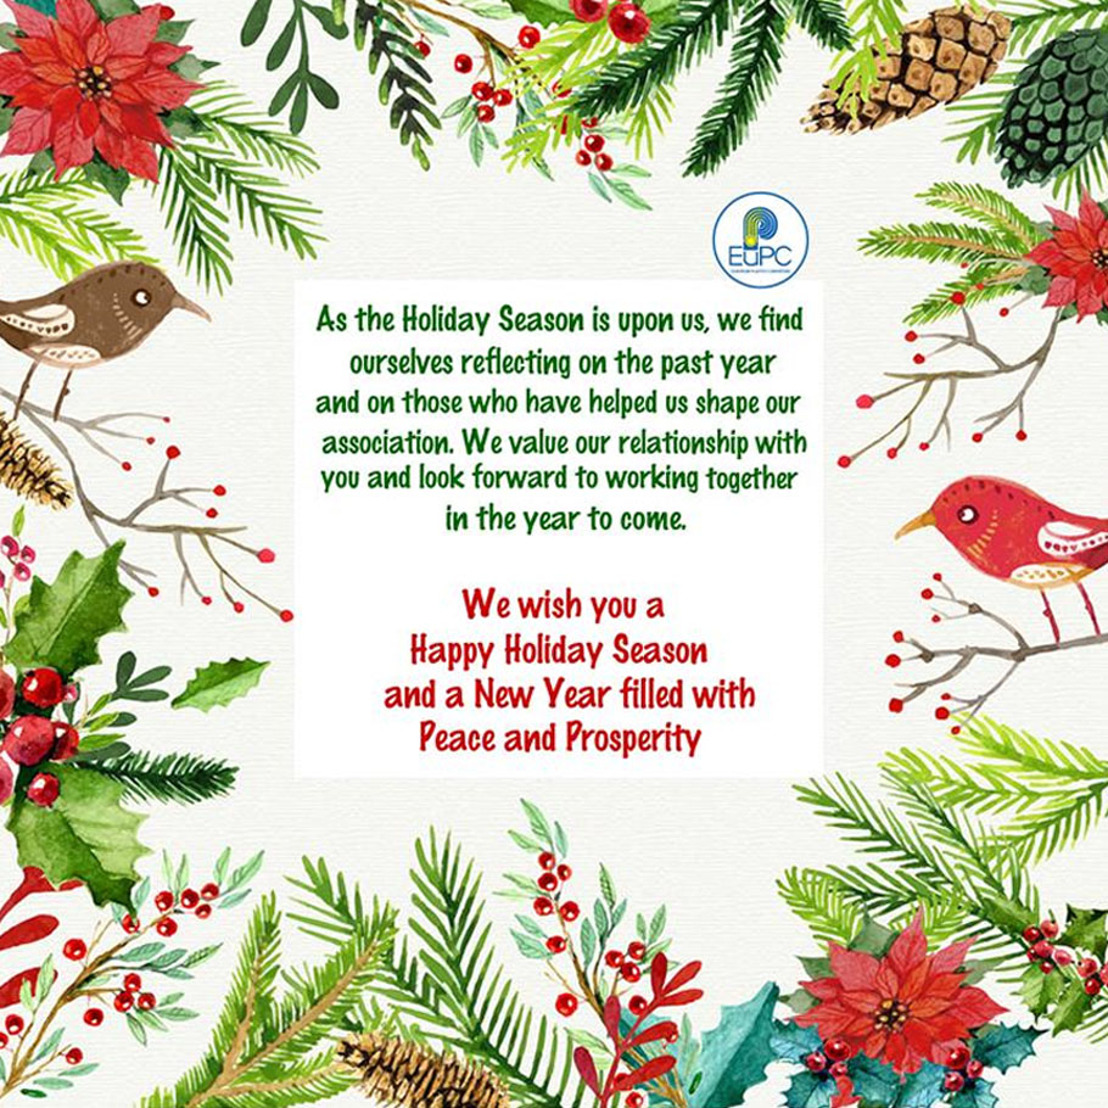 Best Wishes for a Happy Holiday Season & New Year 2016